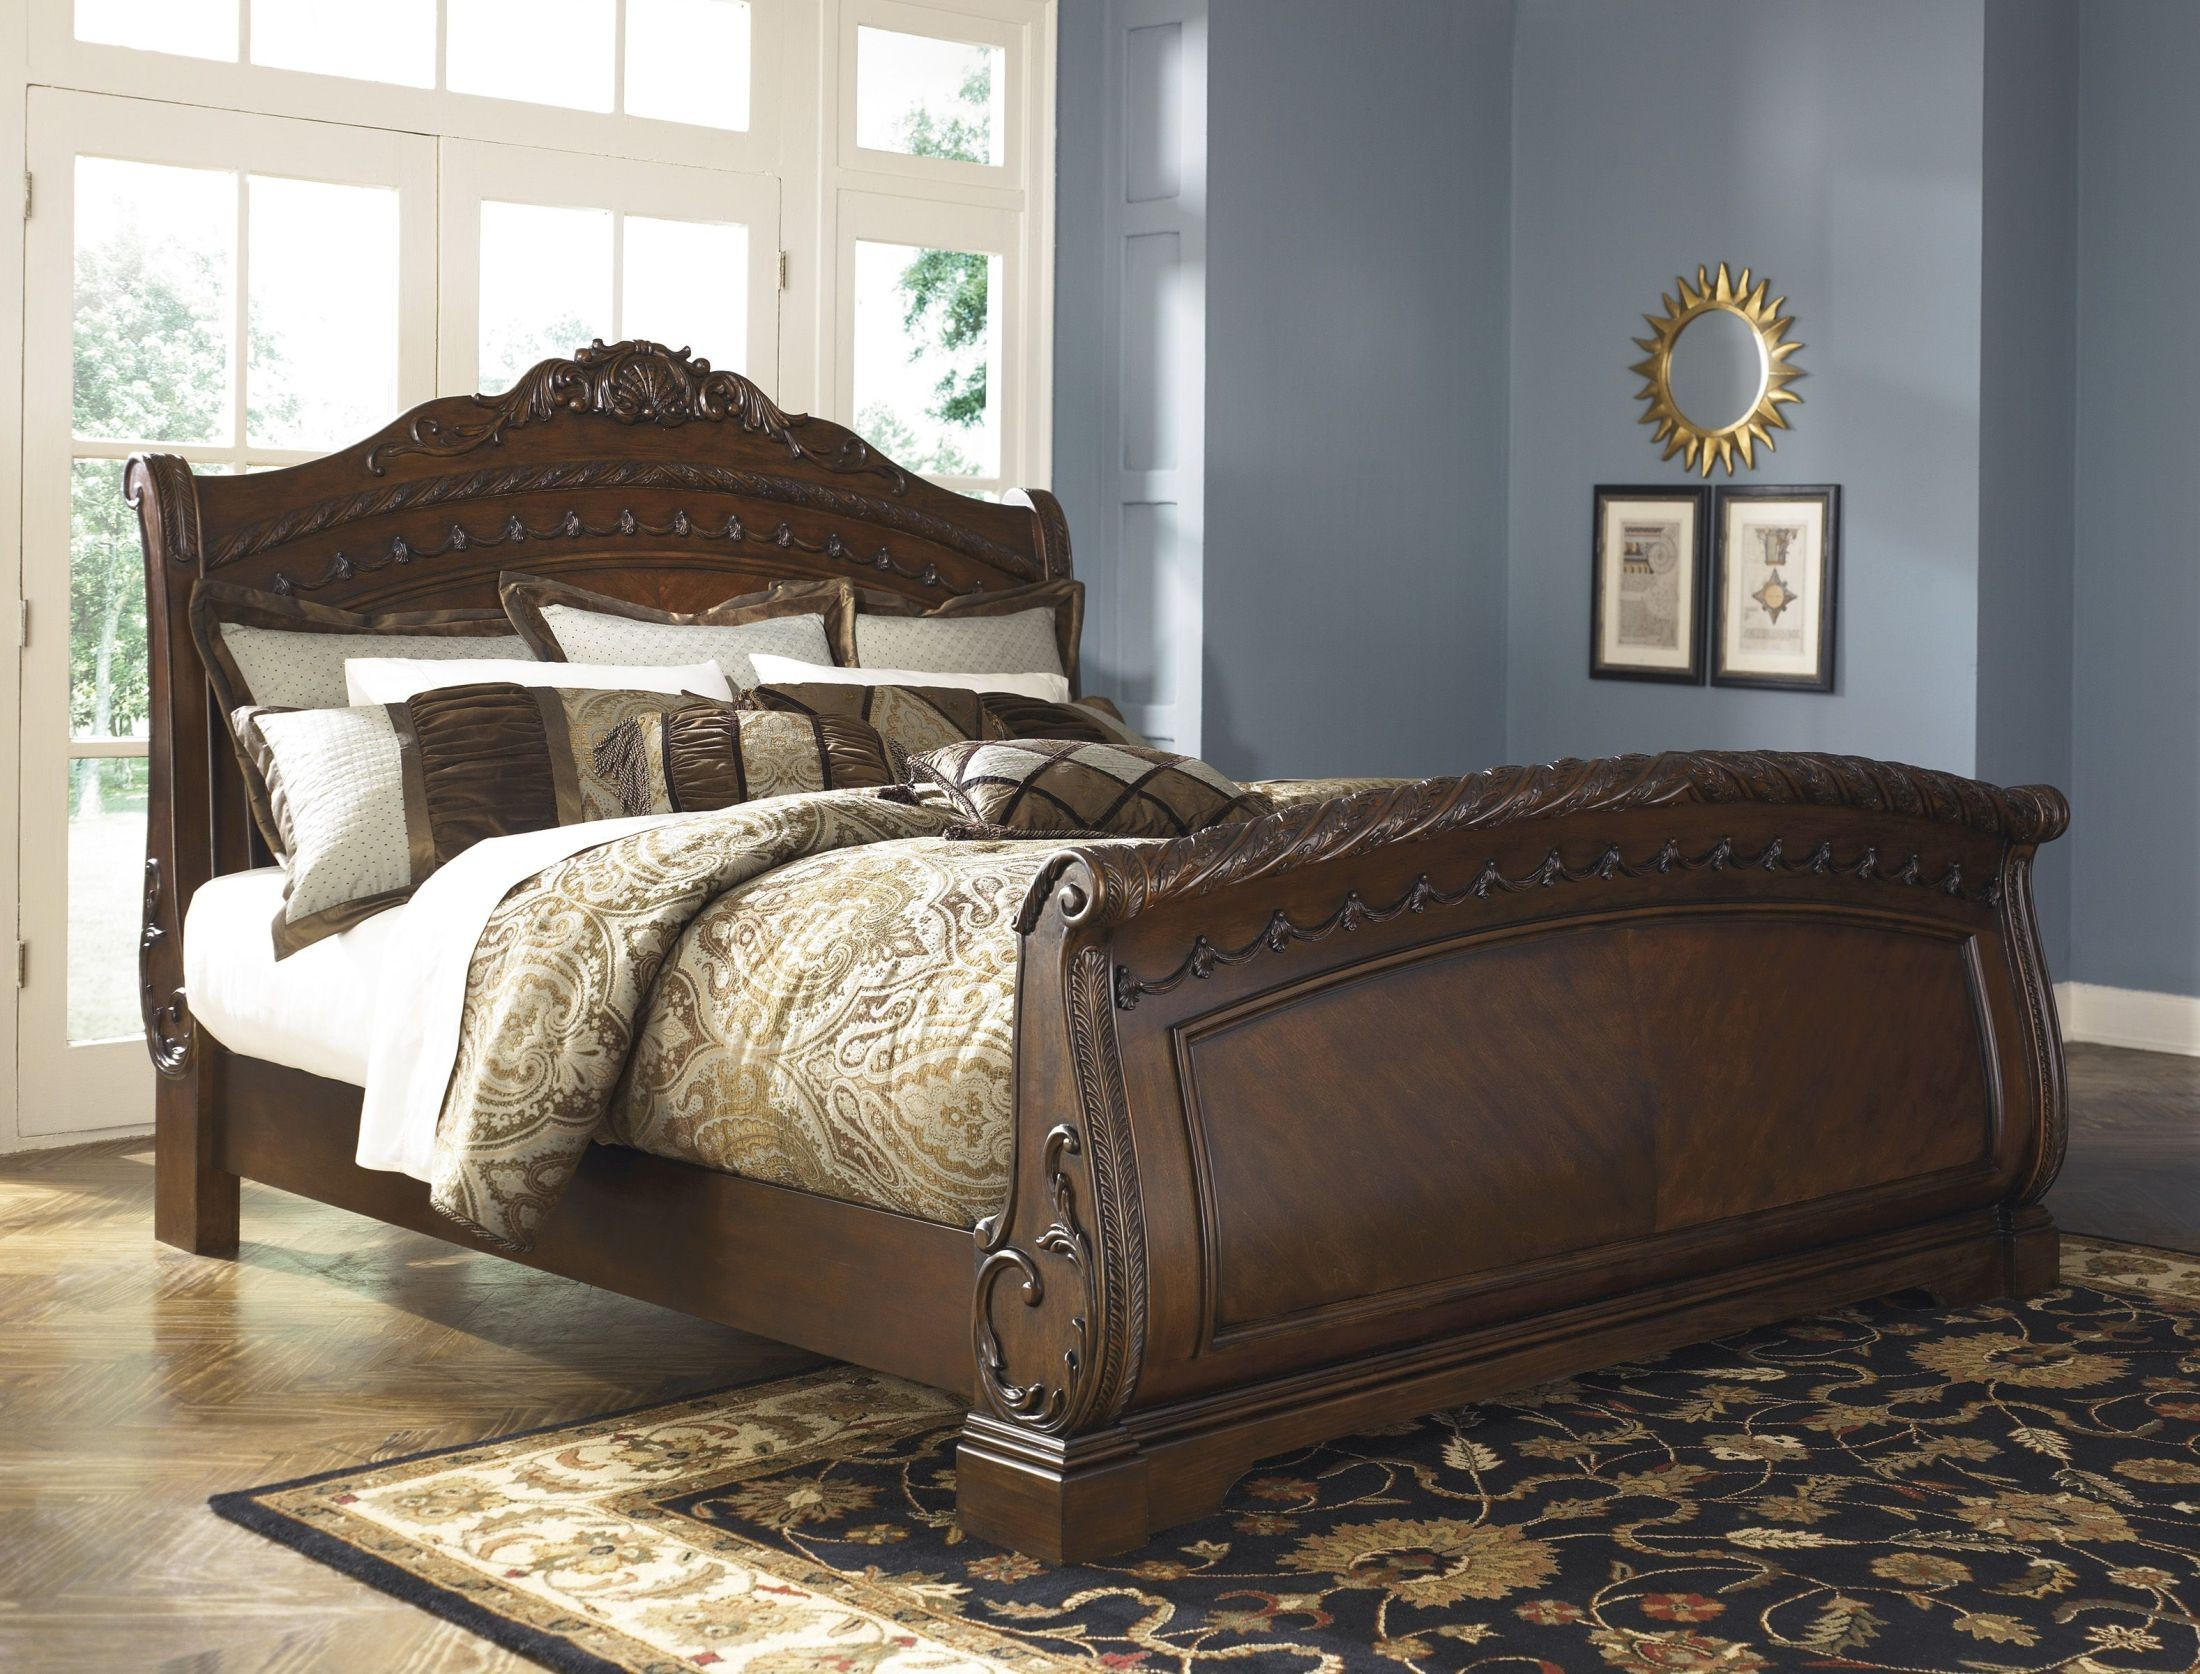 North shore sleigh bedroom set from ashley b553 - King size sleigh bed bedroom set ...